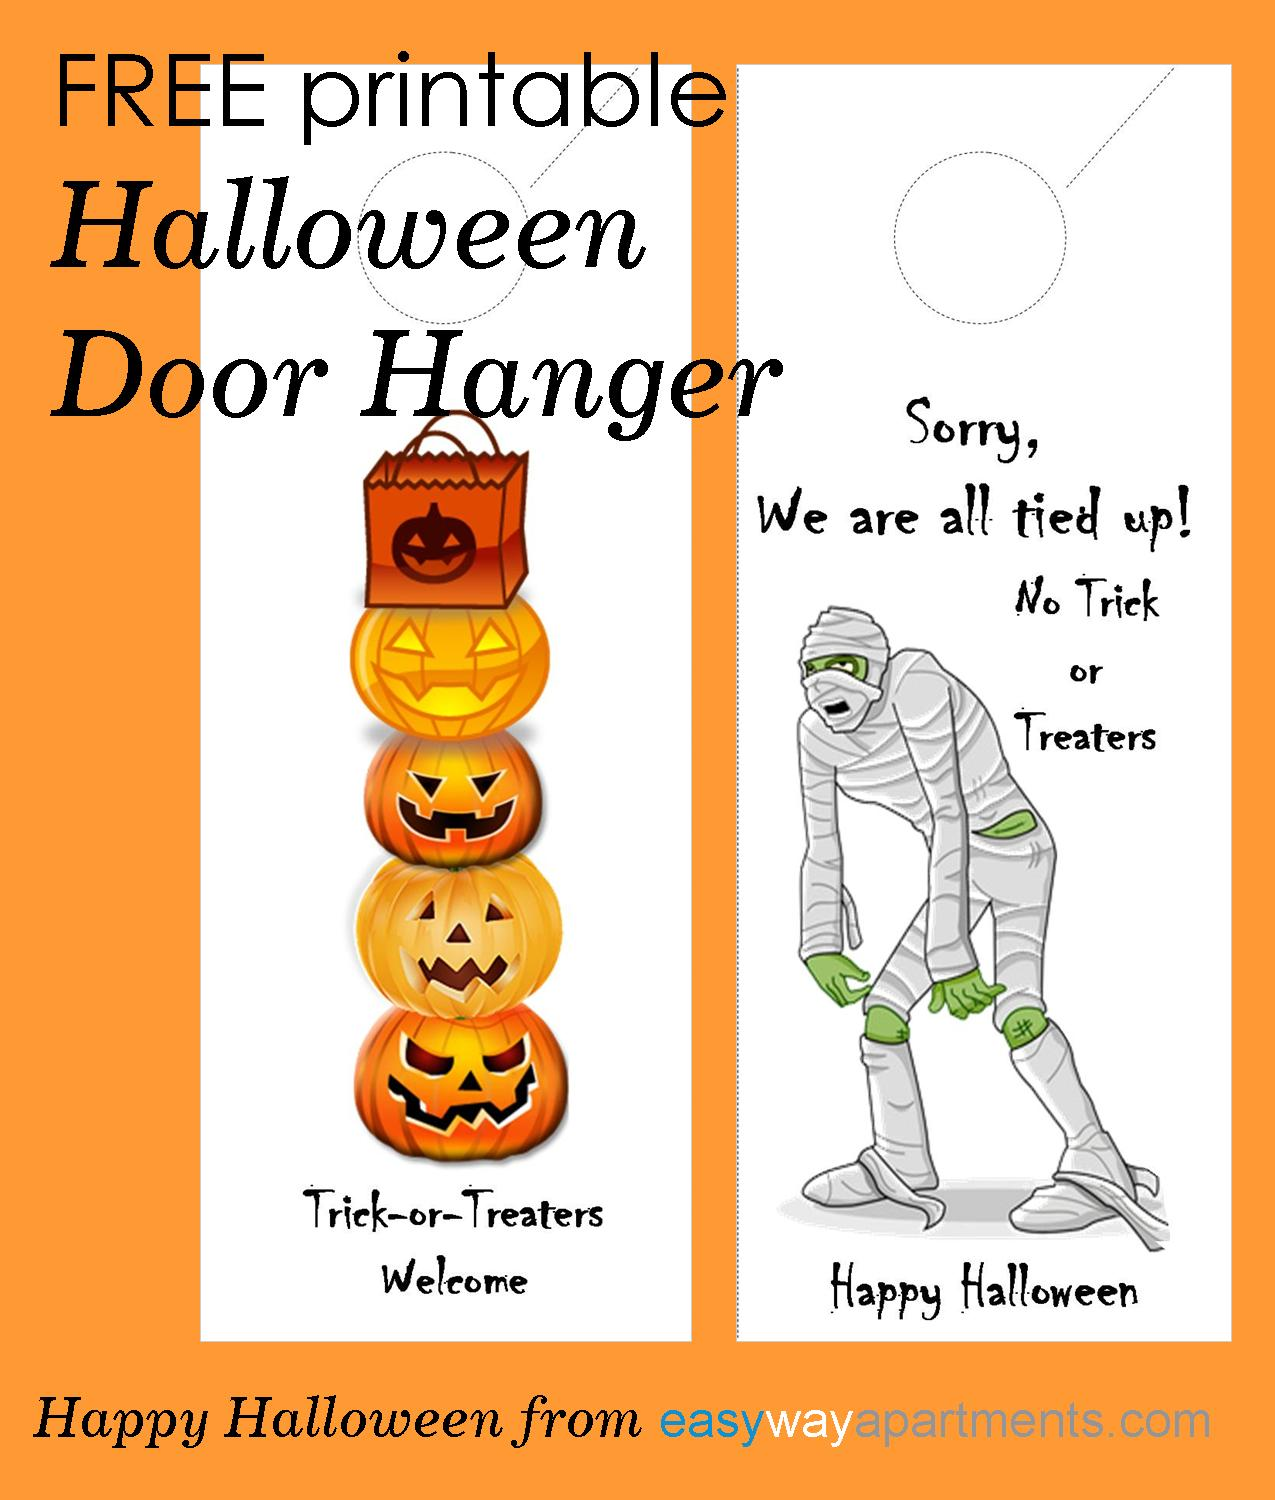 Halloween Trick Or Treaters Door Hanger FREE Printable From EasyWayApartments Download Doorhanger Here